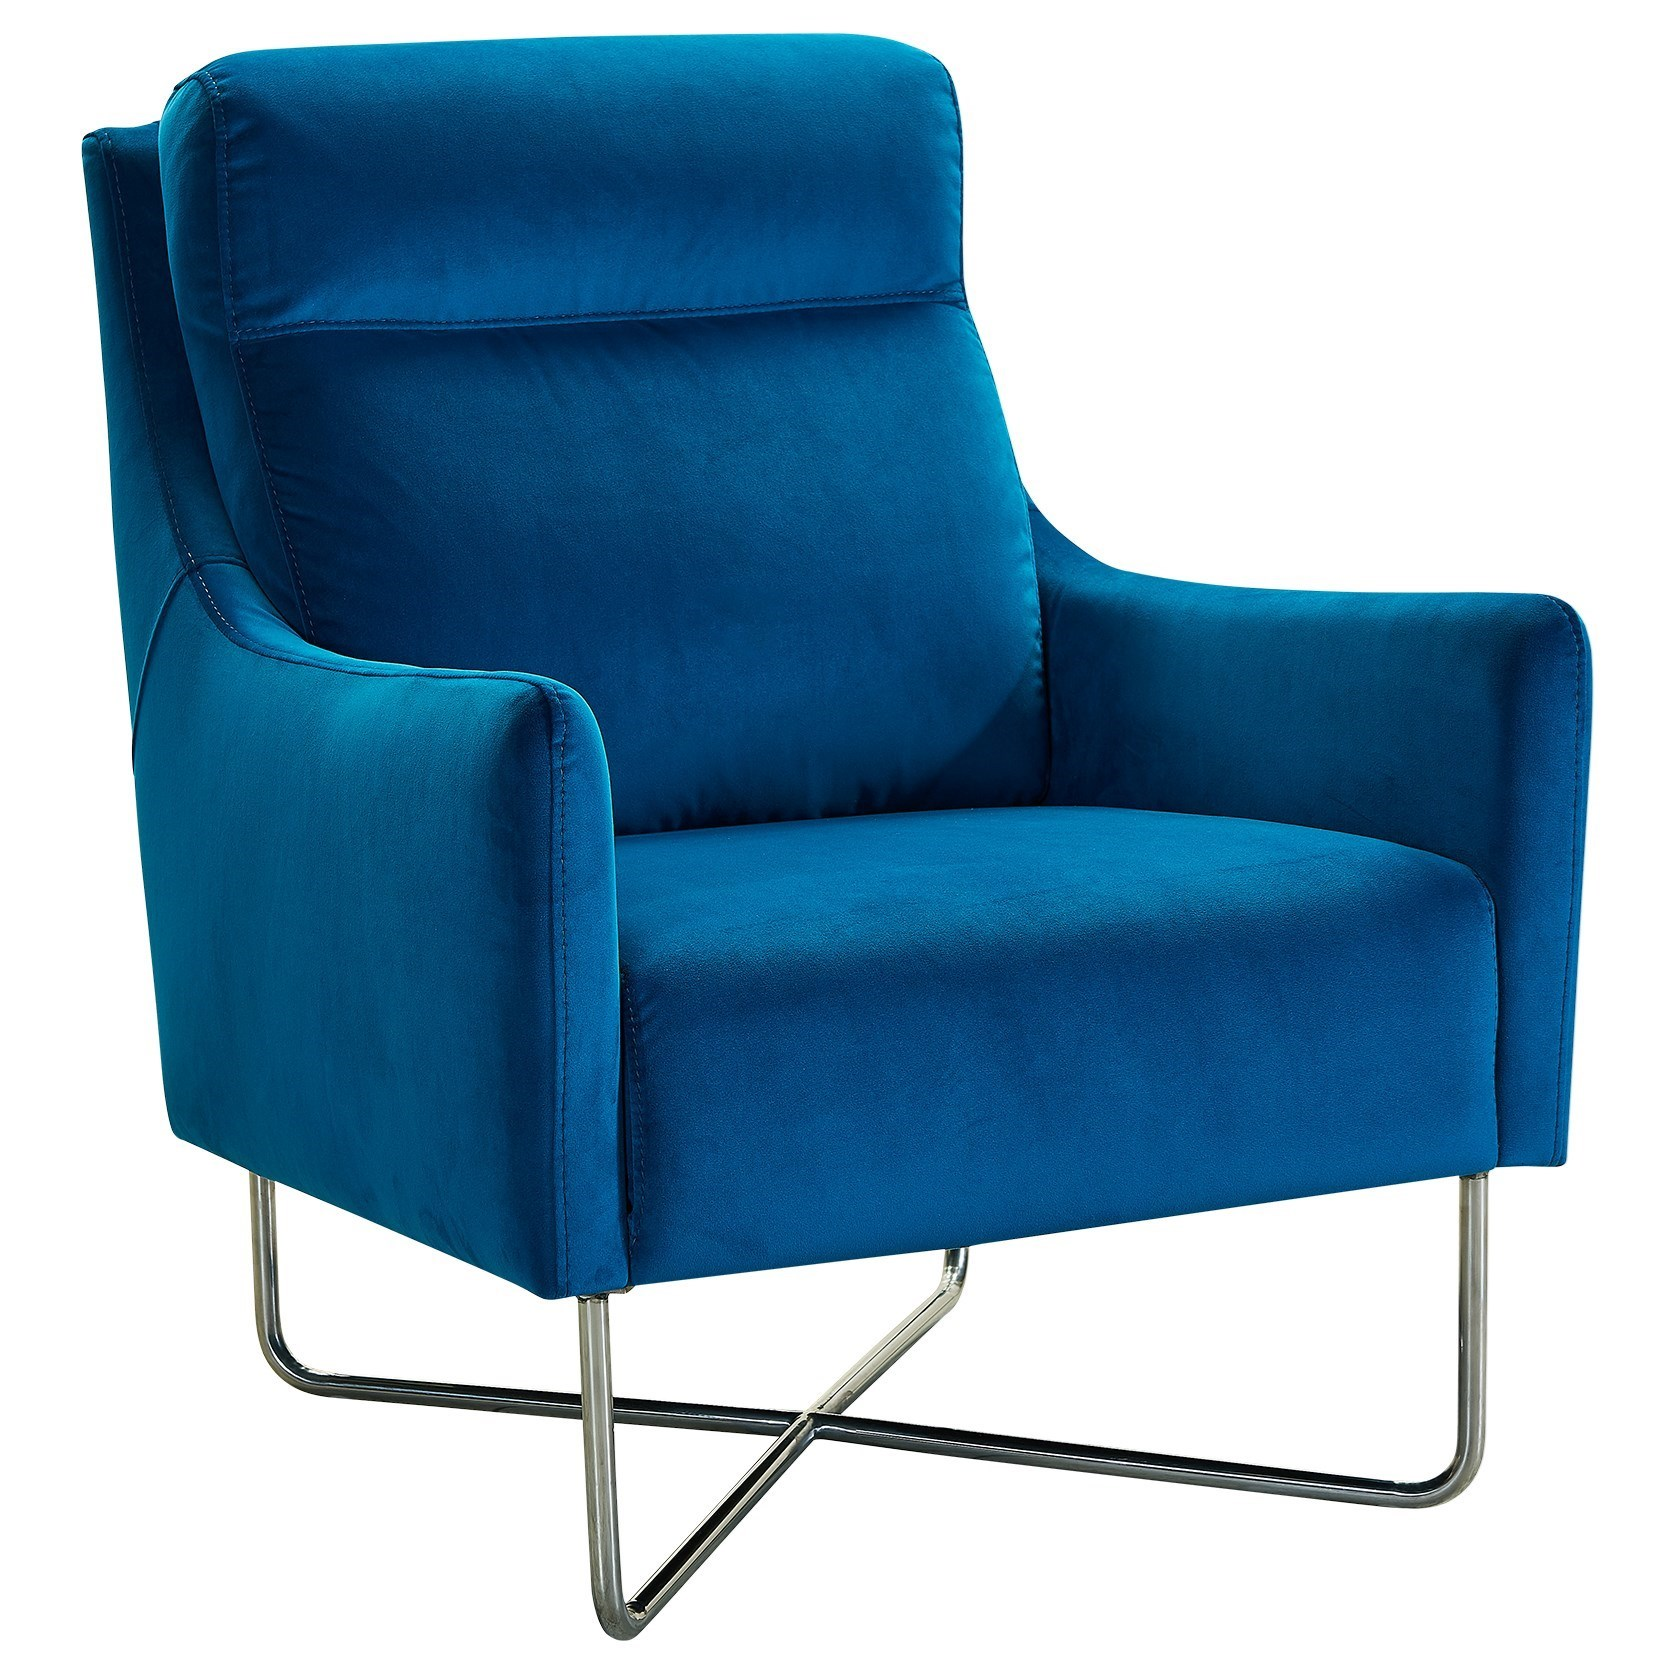 Amber Contemporary Accent Chair by Armen Living at Fisher Home Furnishings